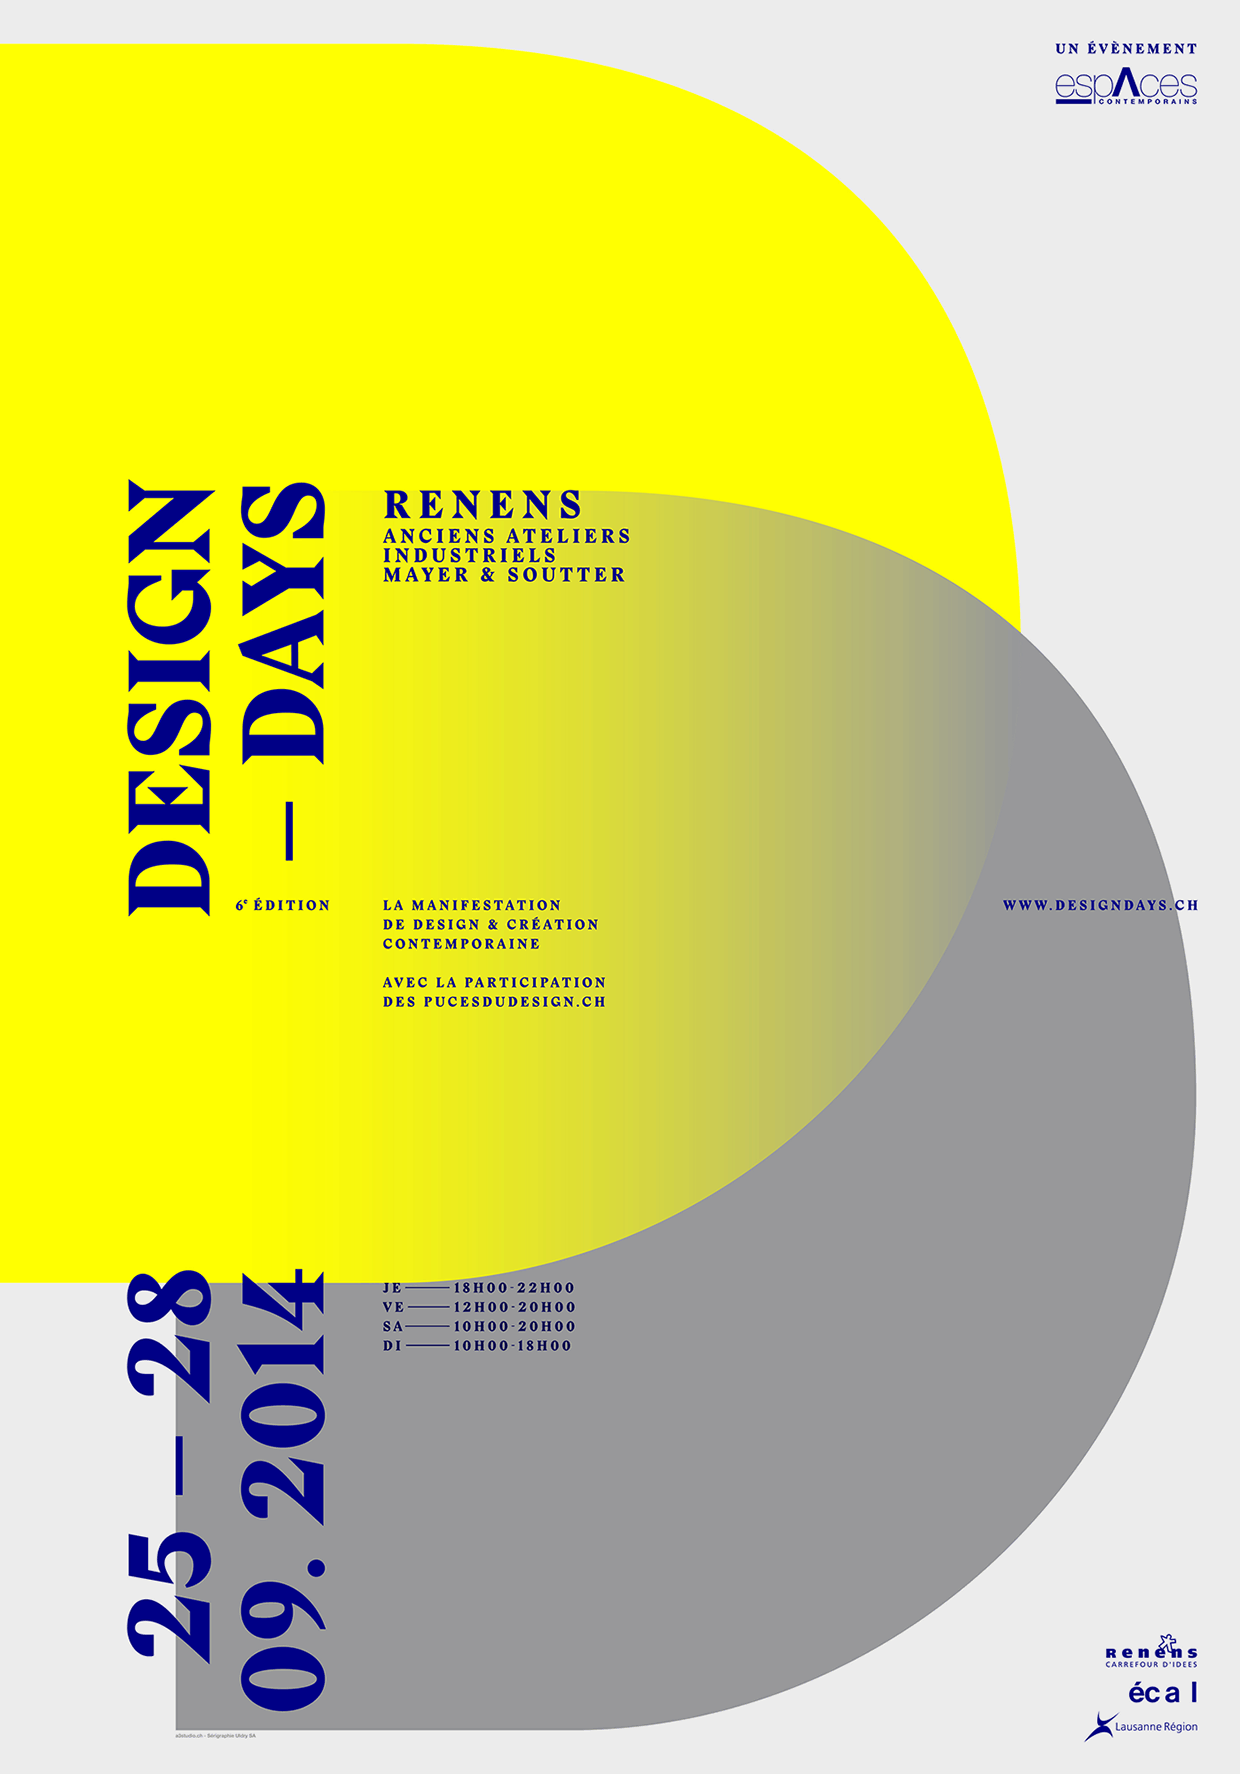 Swiss Style Poster for Design Days 2014